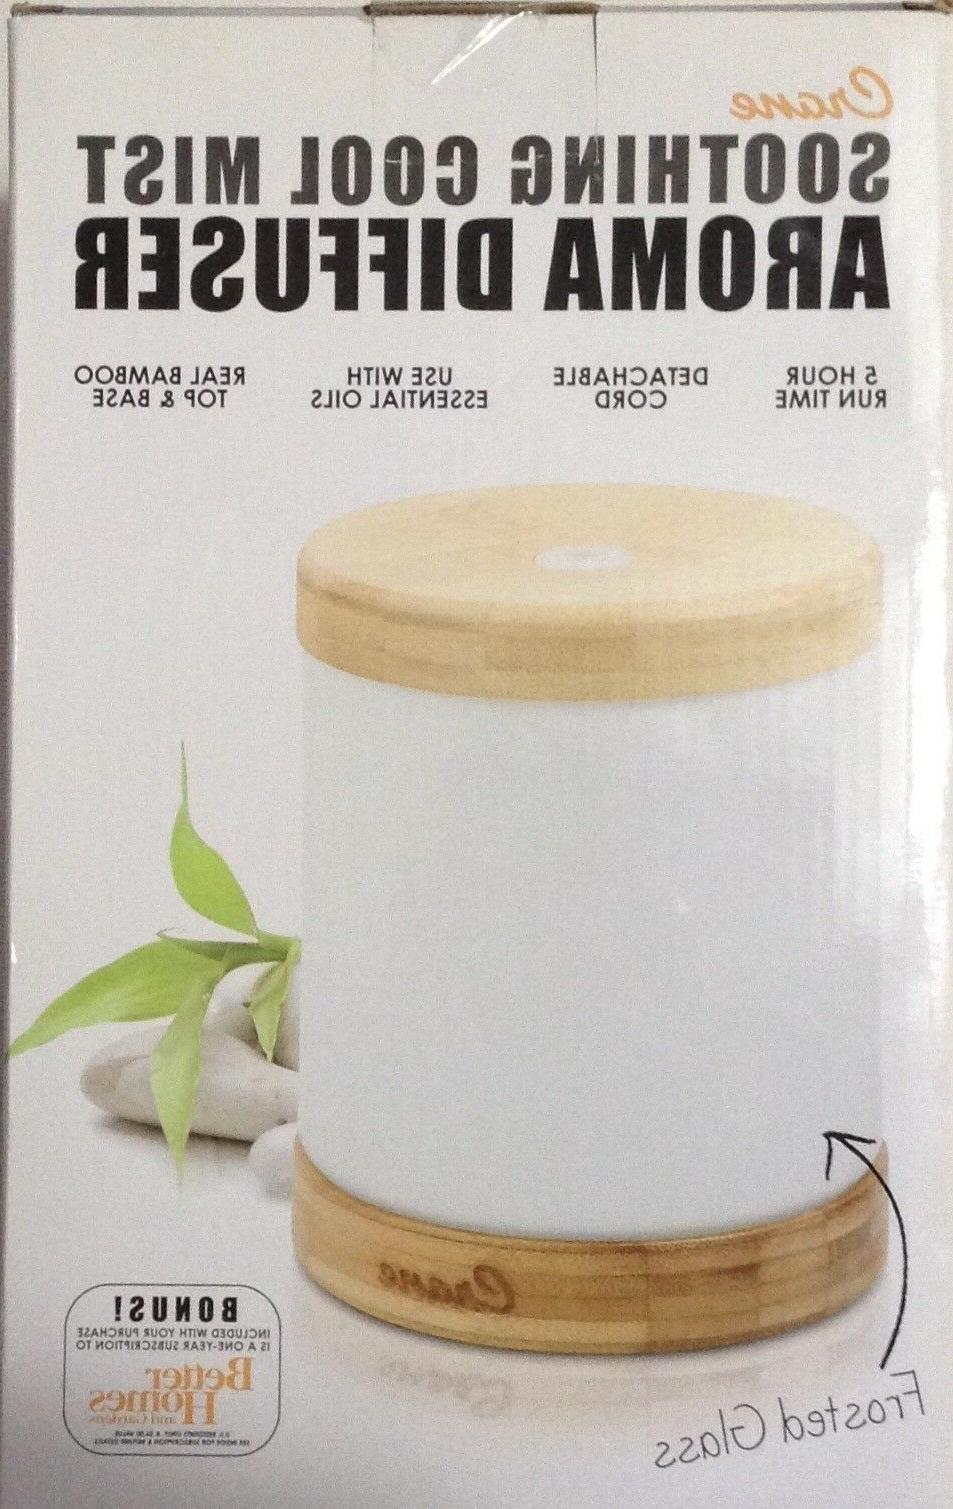 Crane Soothing Aroma Diffuser Essential Humidifier